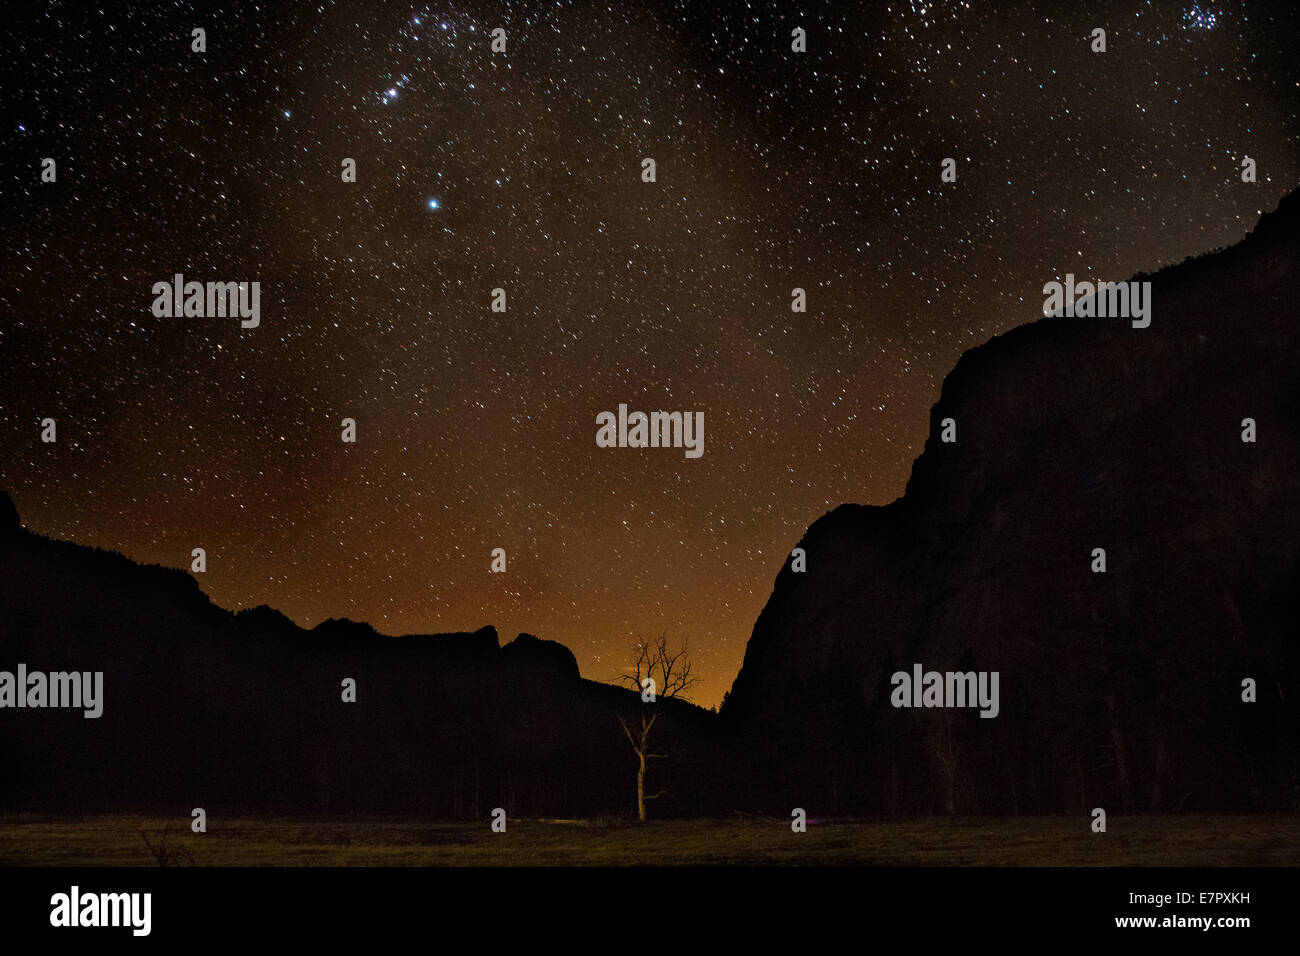 CA02283-00...CALIFORNIA - Night stars over Yosemite Valley shortly before the moon rises in Yosemite National Park. - Stock Image